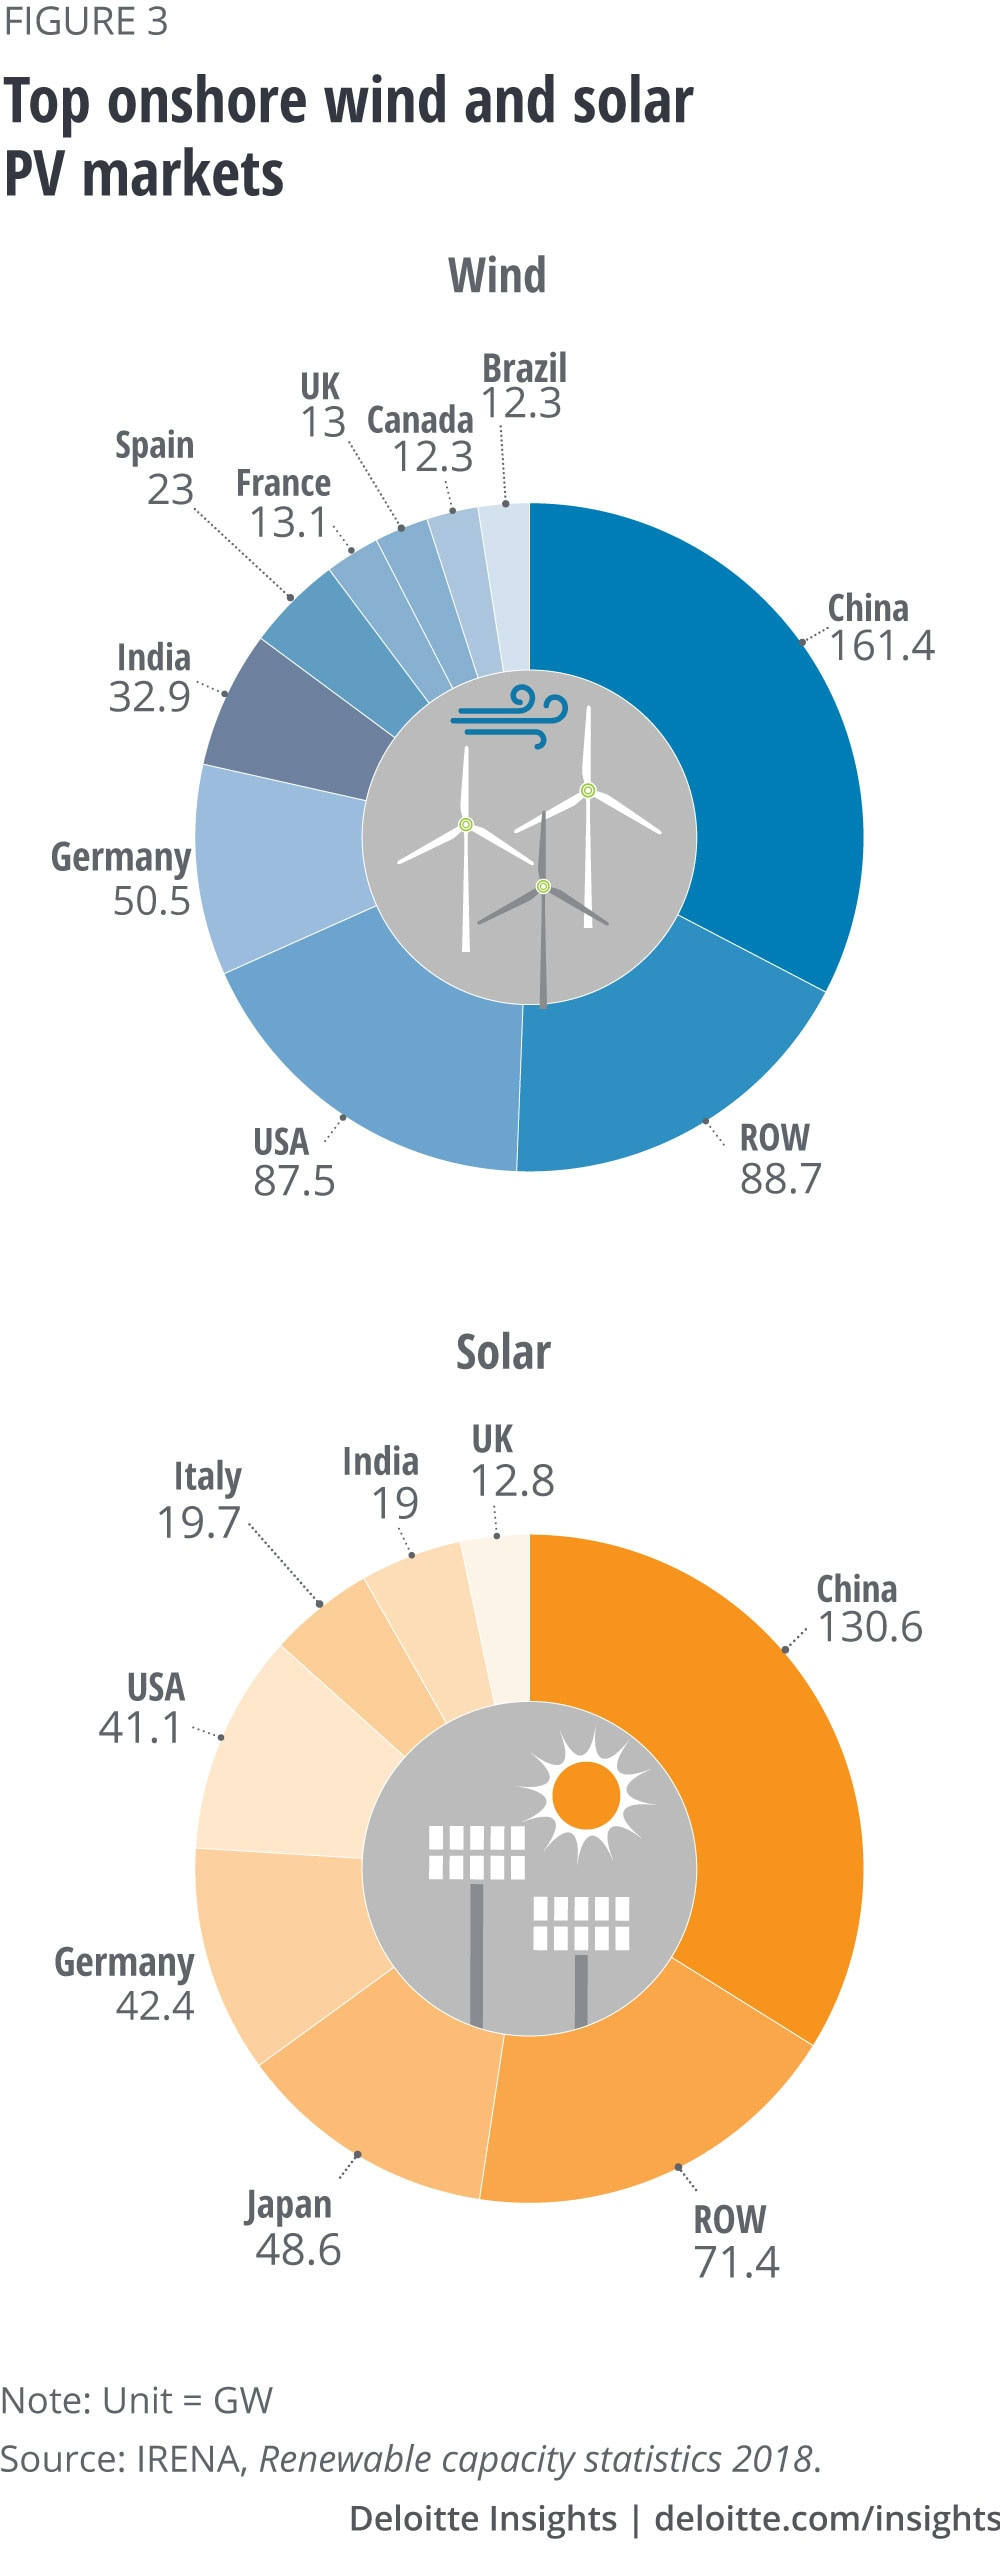 Top onshore wind and solar PV markets